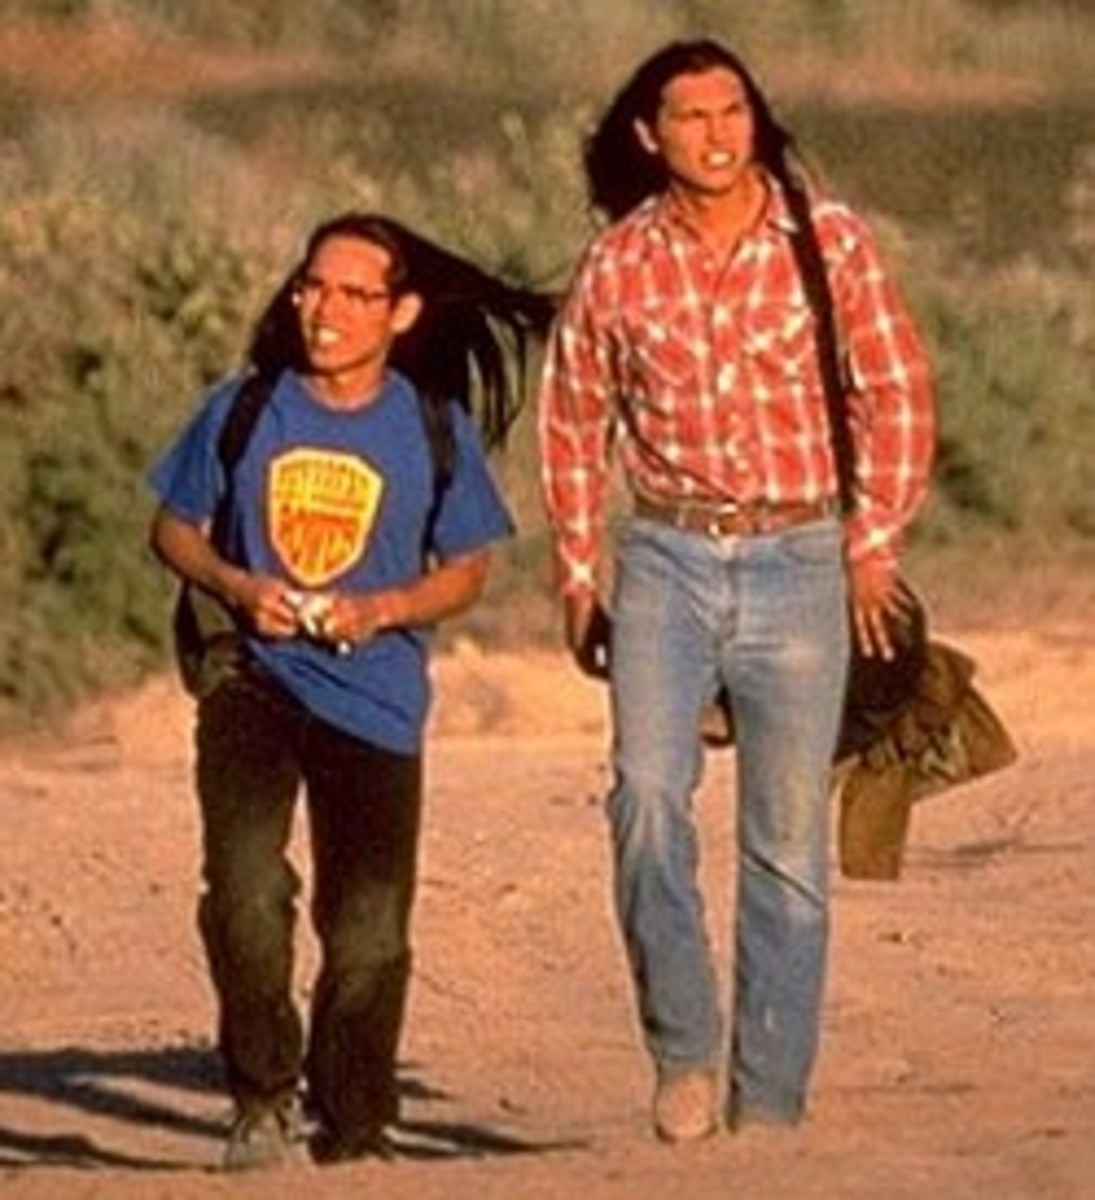 The movie Smoke Signals was based on the stories in The Lone Ranger and Tonto Fistfight in Heaven